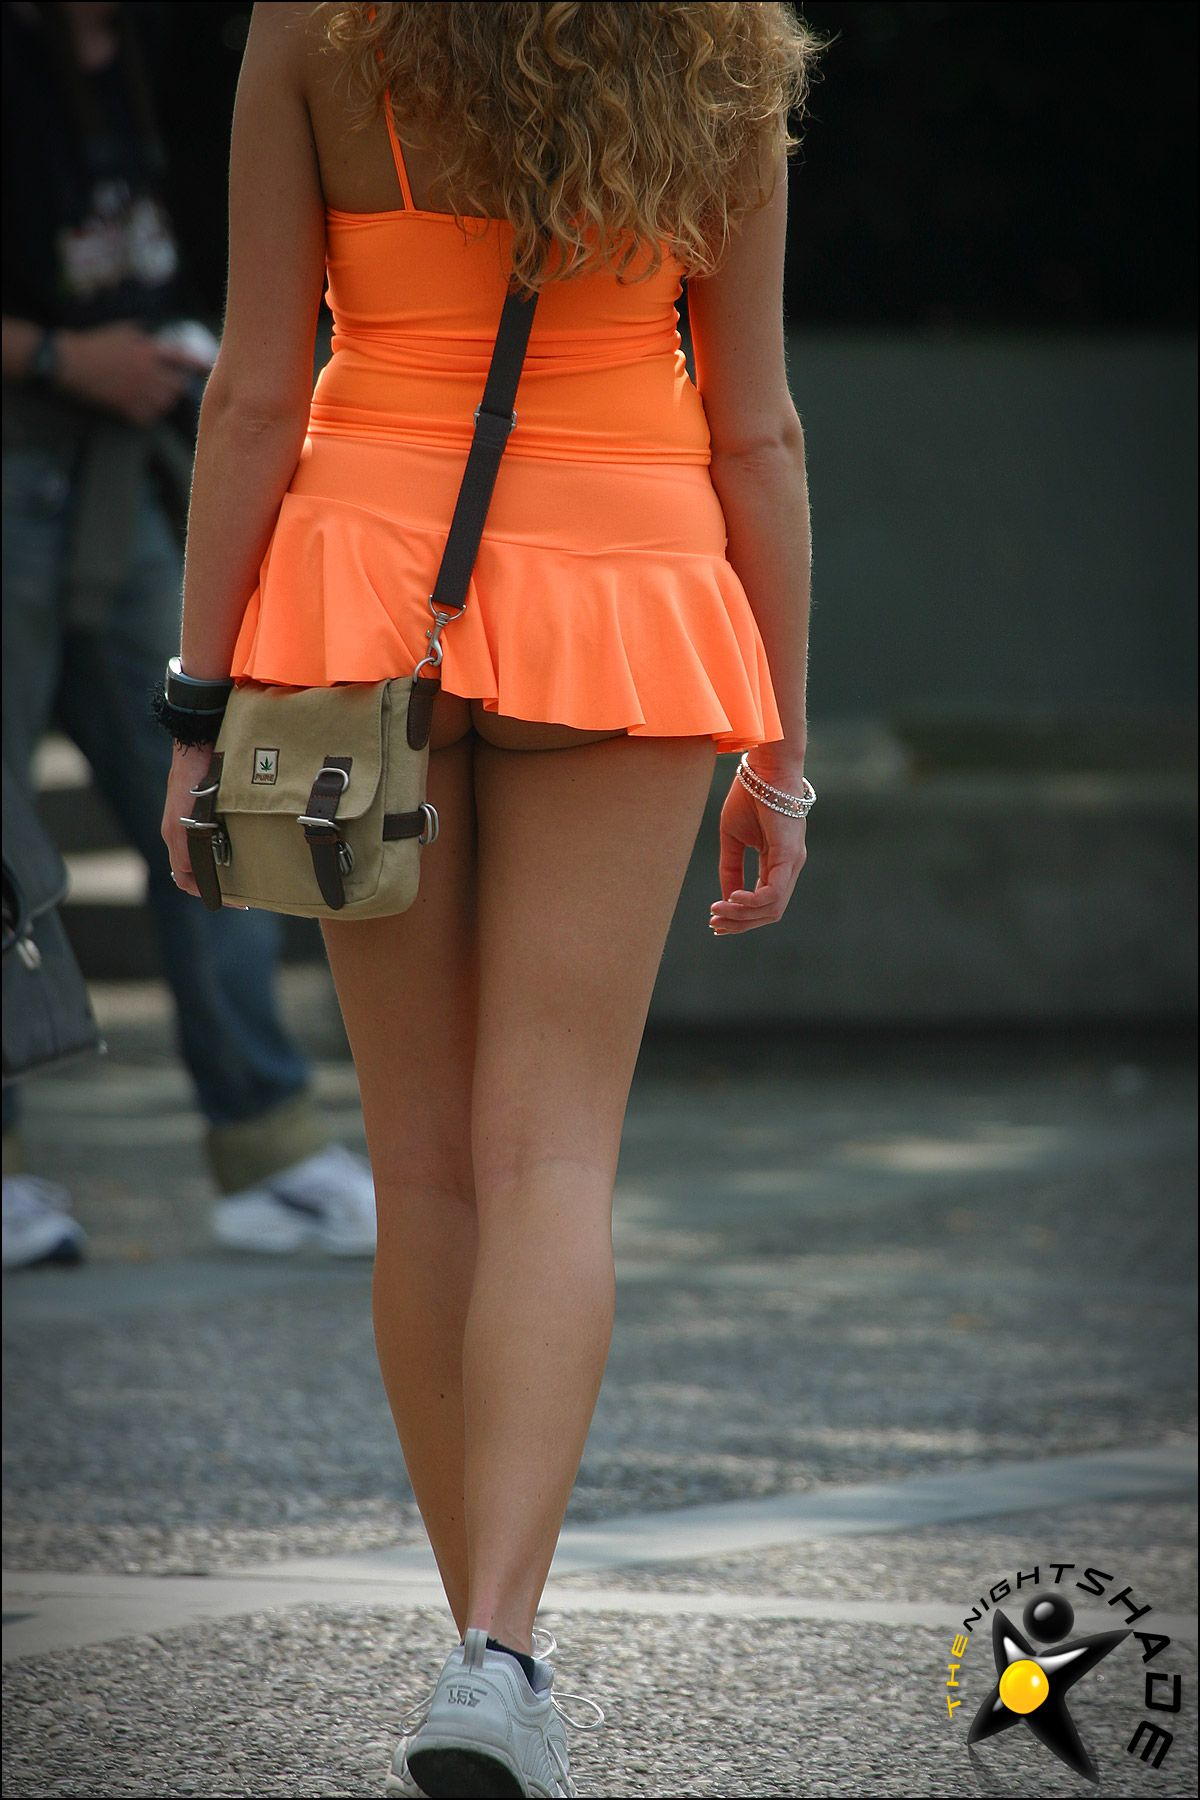 Micro mini skirts in public